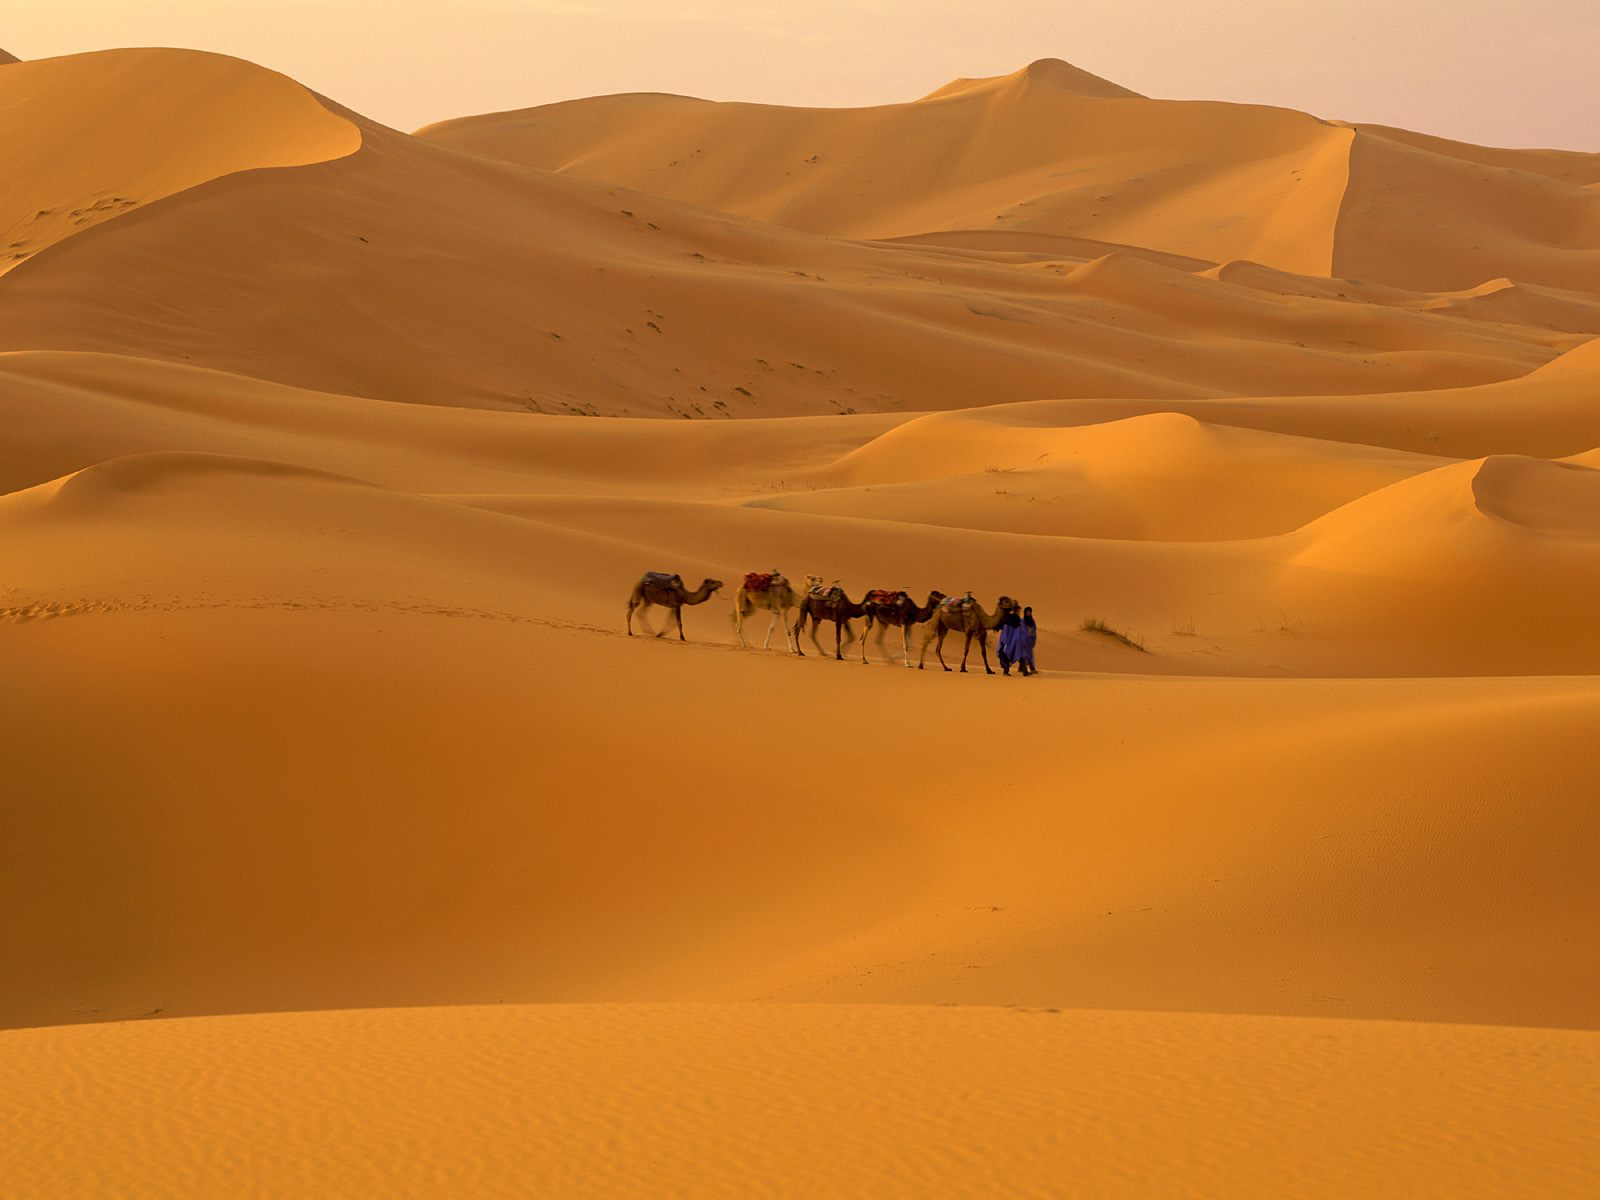 Sahara Desert World Largest Desert In Africa Luxury Places - What is the largest desert in the world